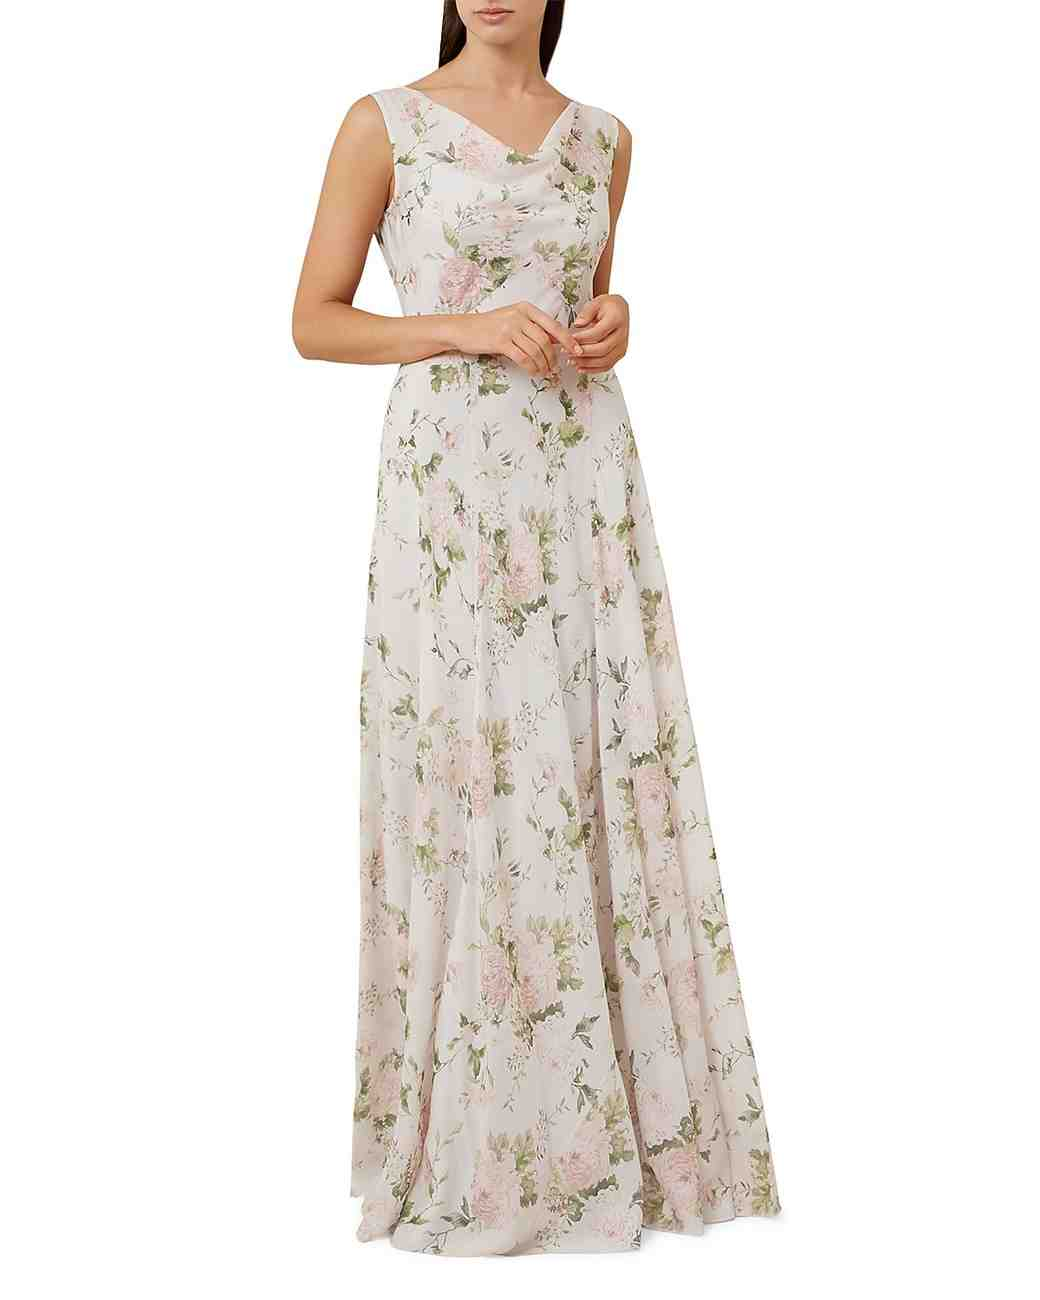 Silk Mother of the Bride Dress, Hobbs London Floral Gown